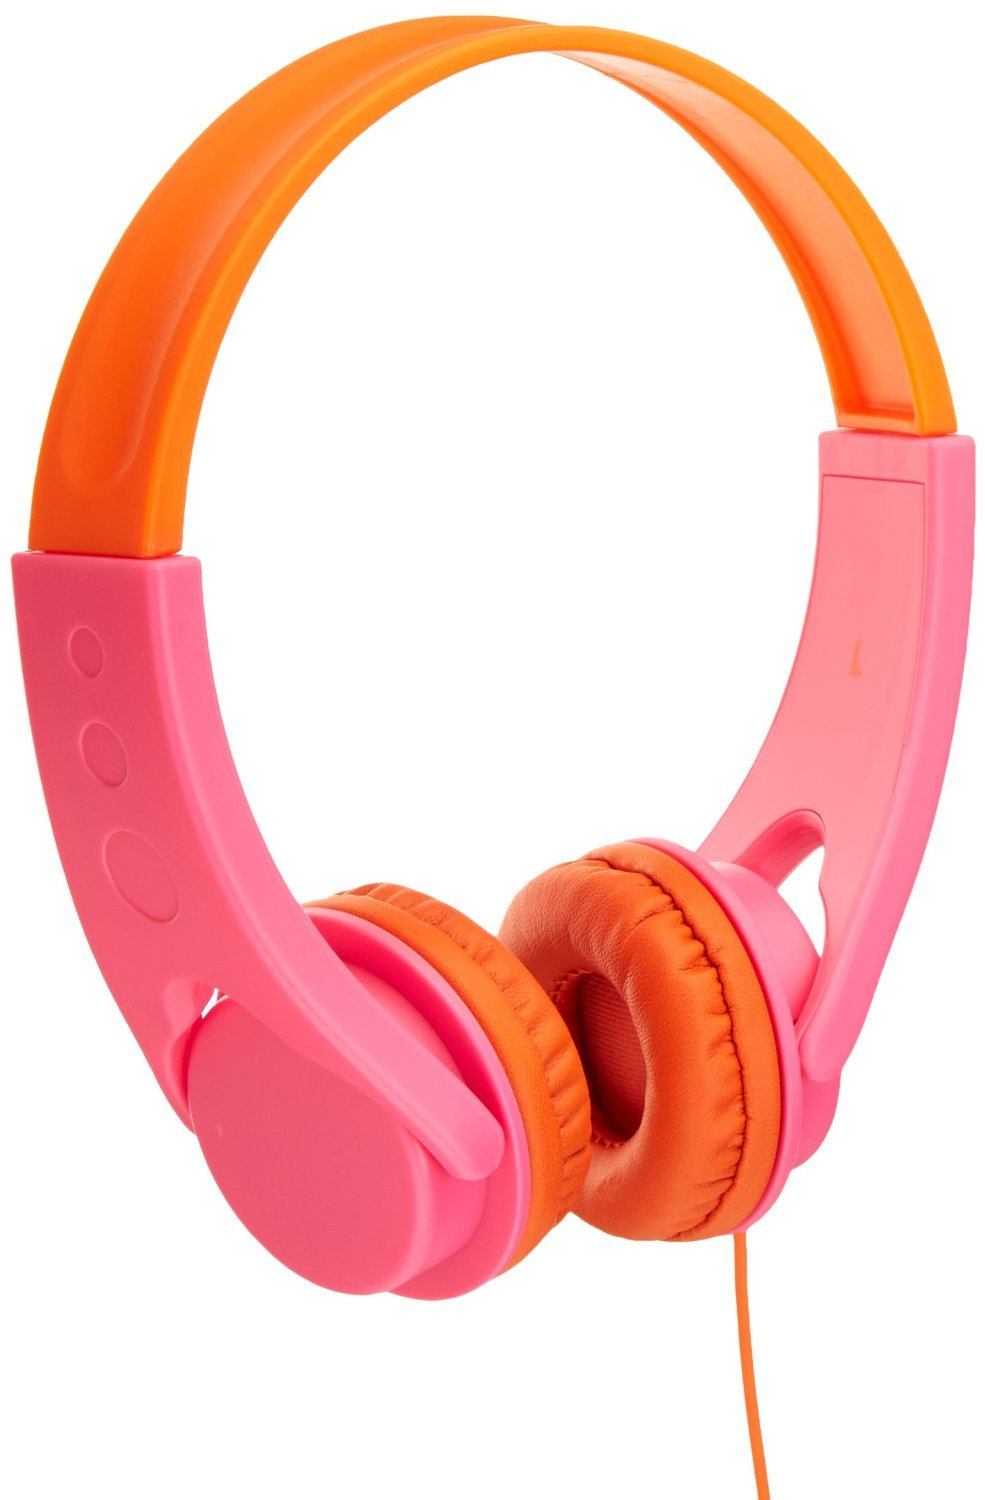 AmazonBasics On-Ear Headphones for Kids - 61nrZP2yMlL - AmazonBasics On-Ear Headphones for Kids bestsellers - 61nrZP2yMlL - Bestsellers